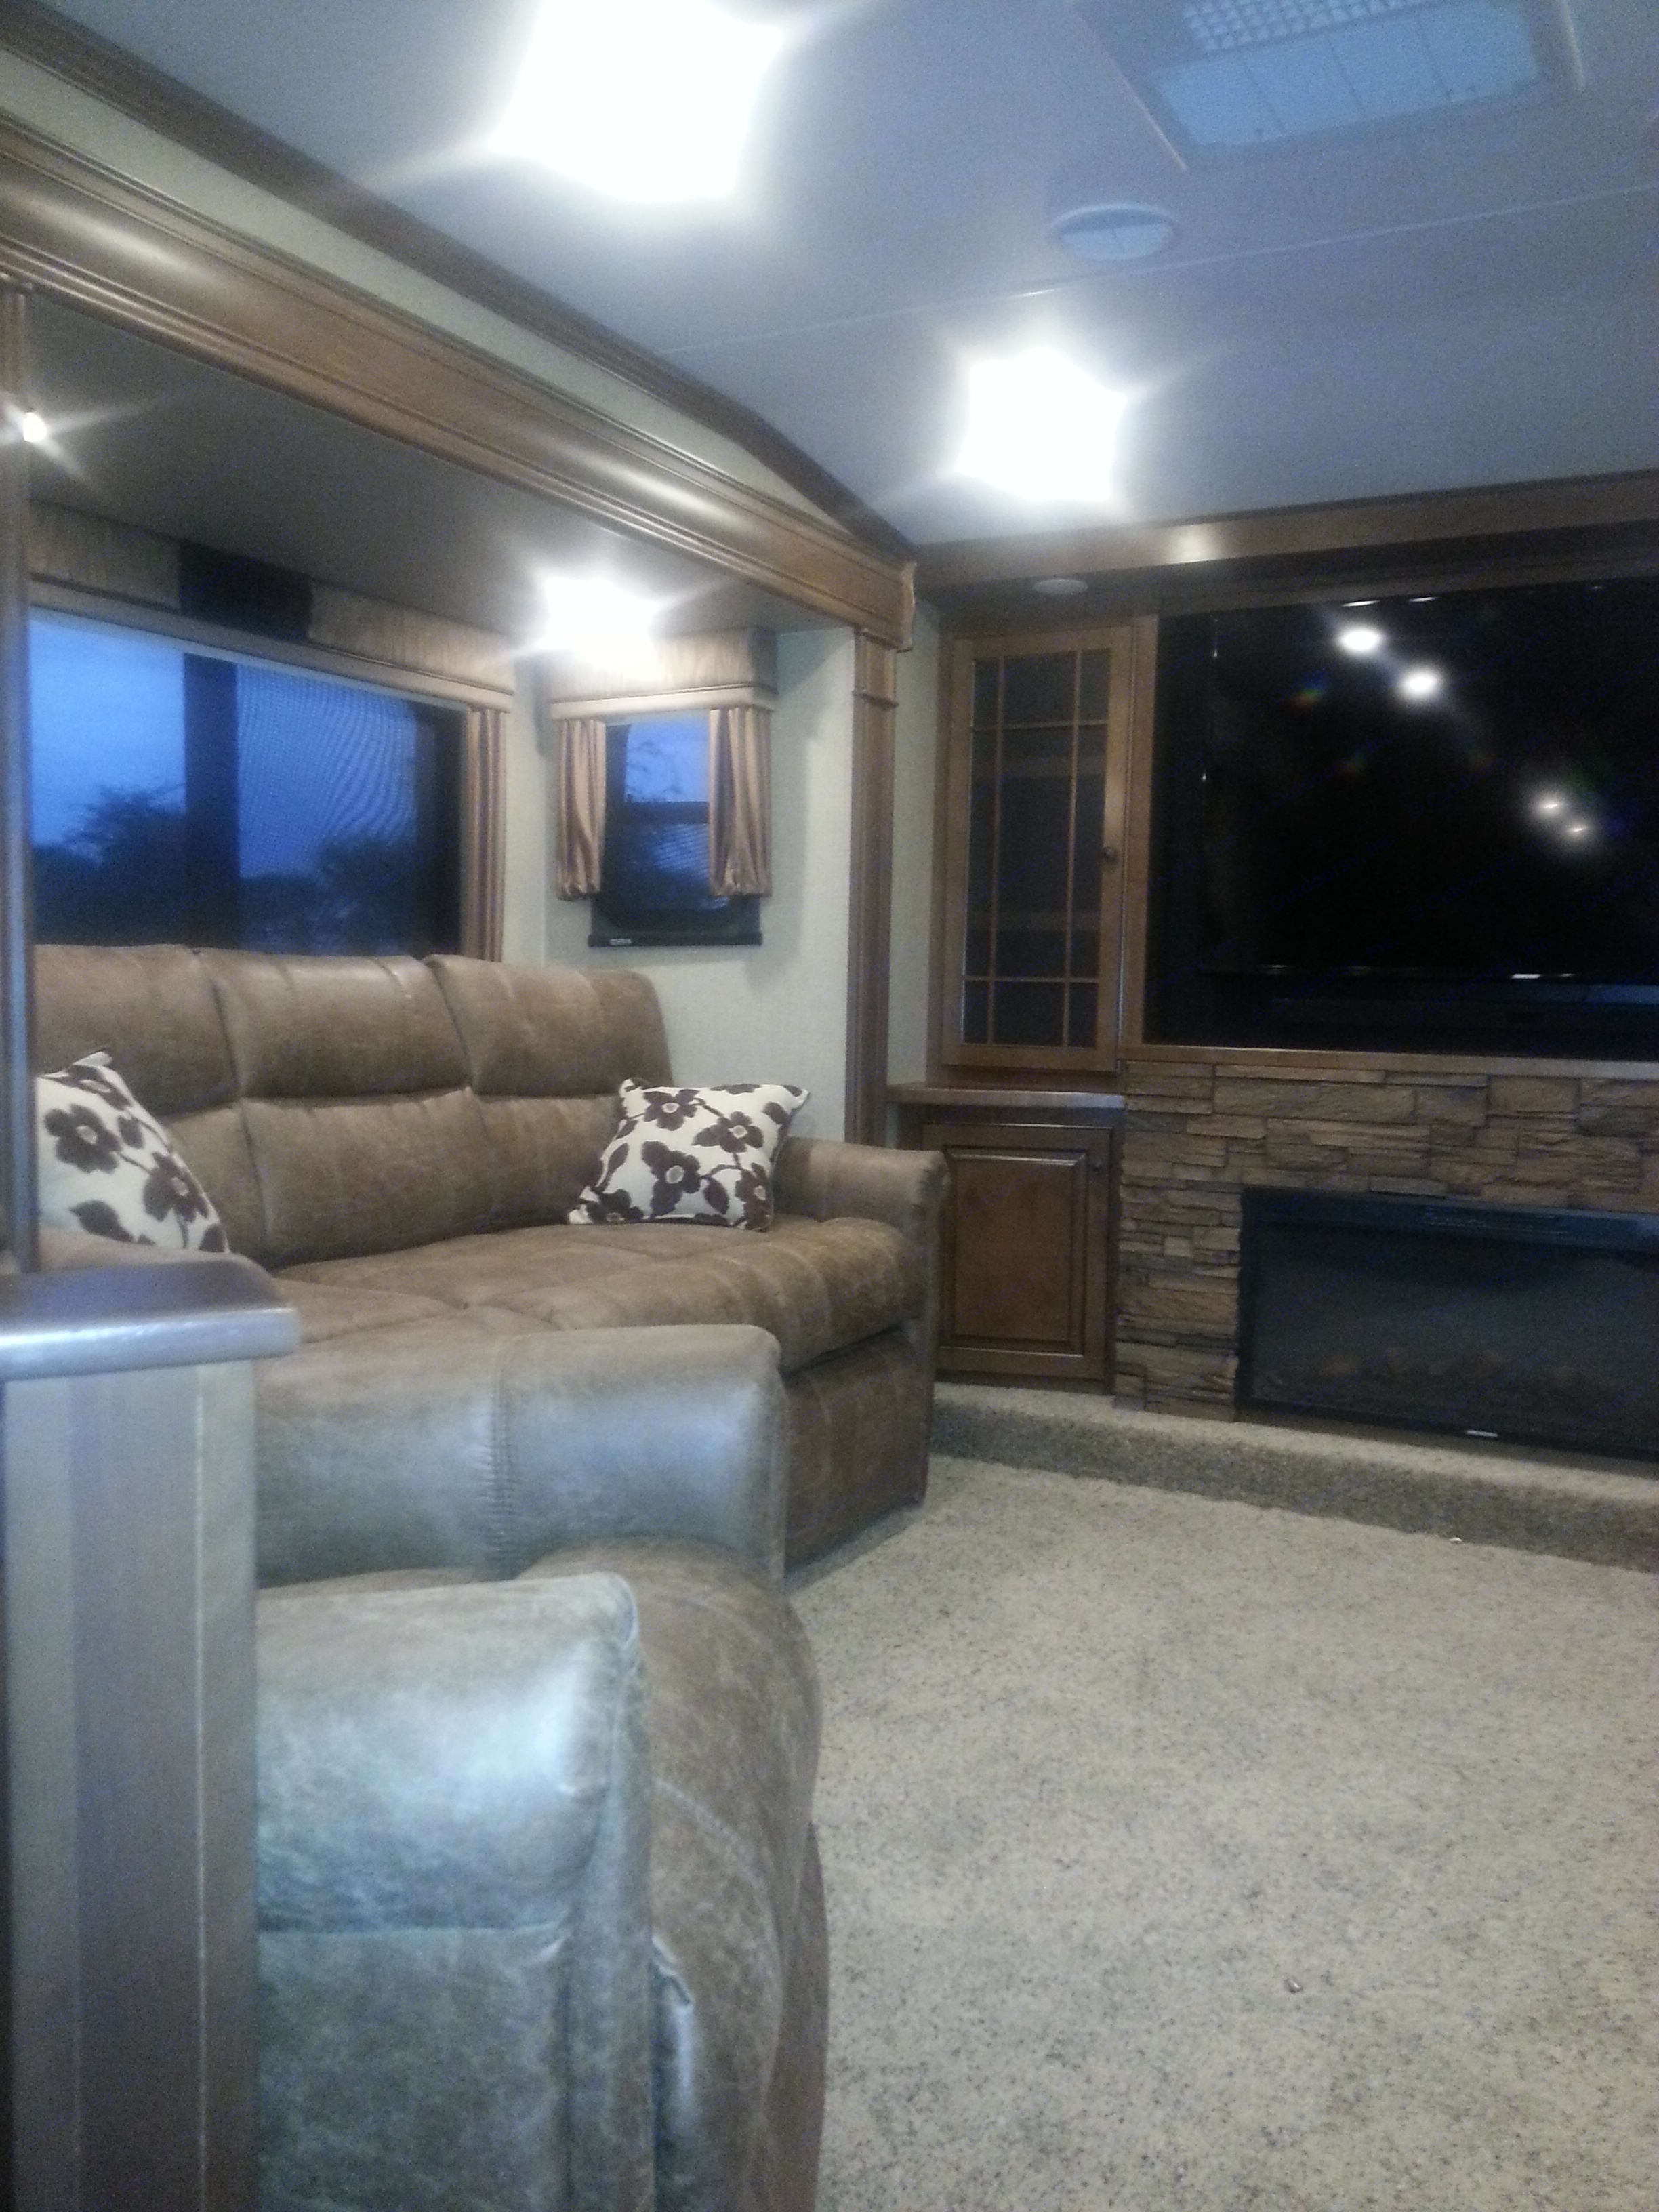 Living Room is large enough to accommodate Queen Size Air Mattress. . Heartland Bighorn 2015